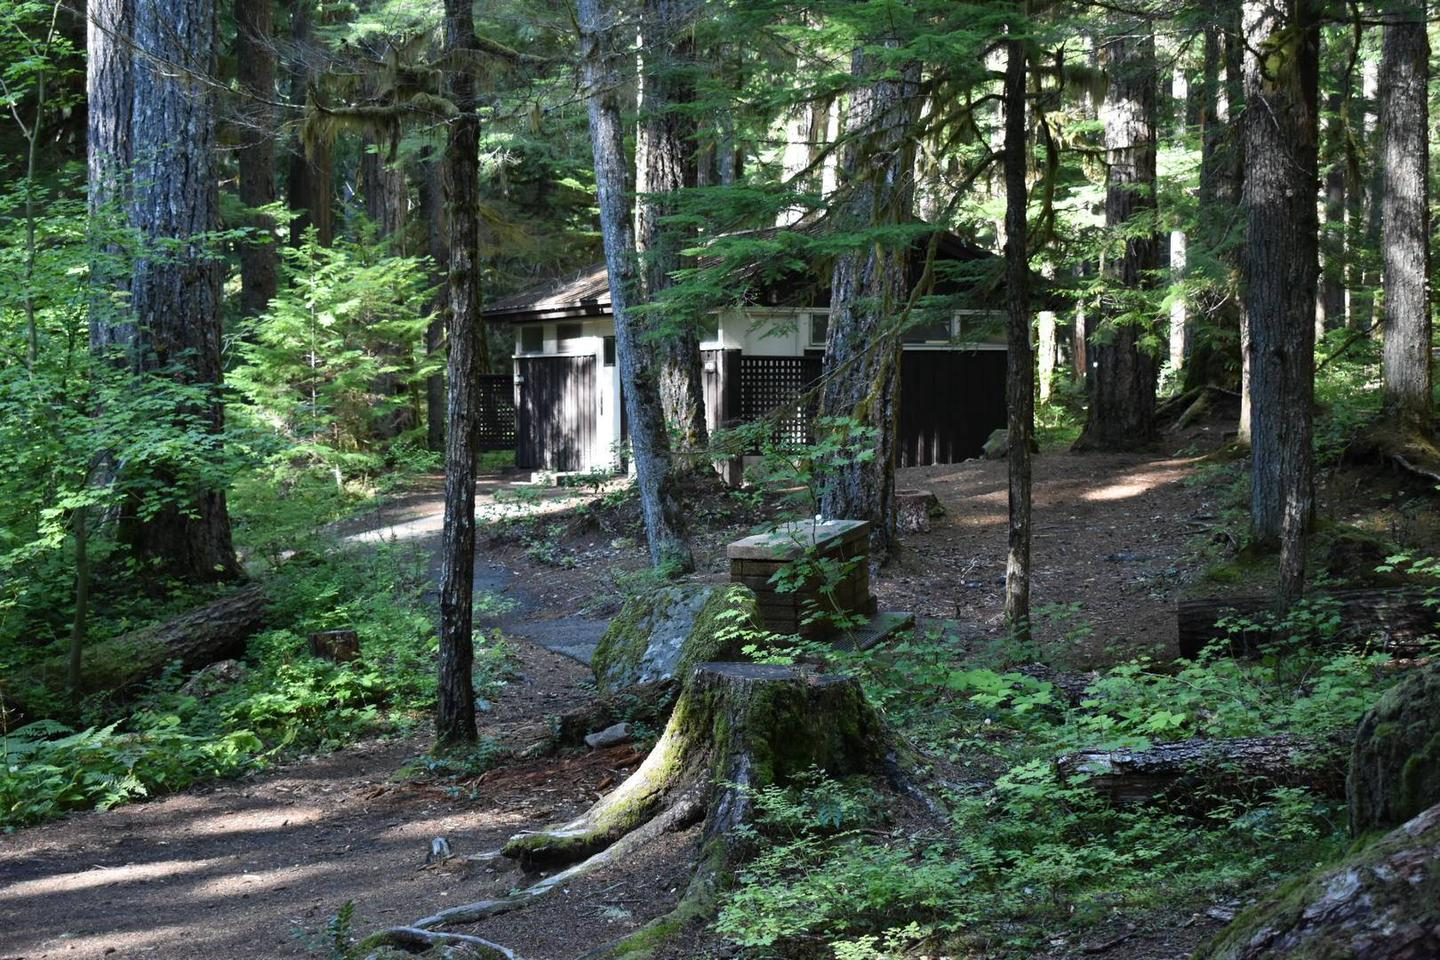 A short path behind the campsite leads to the restroom facilities.